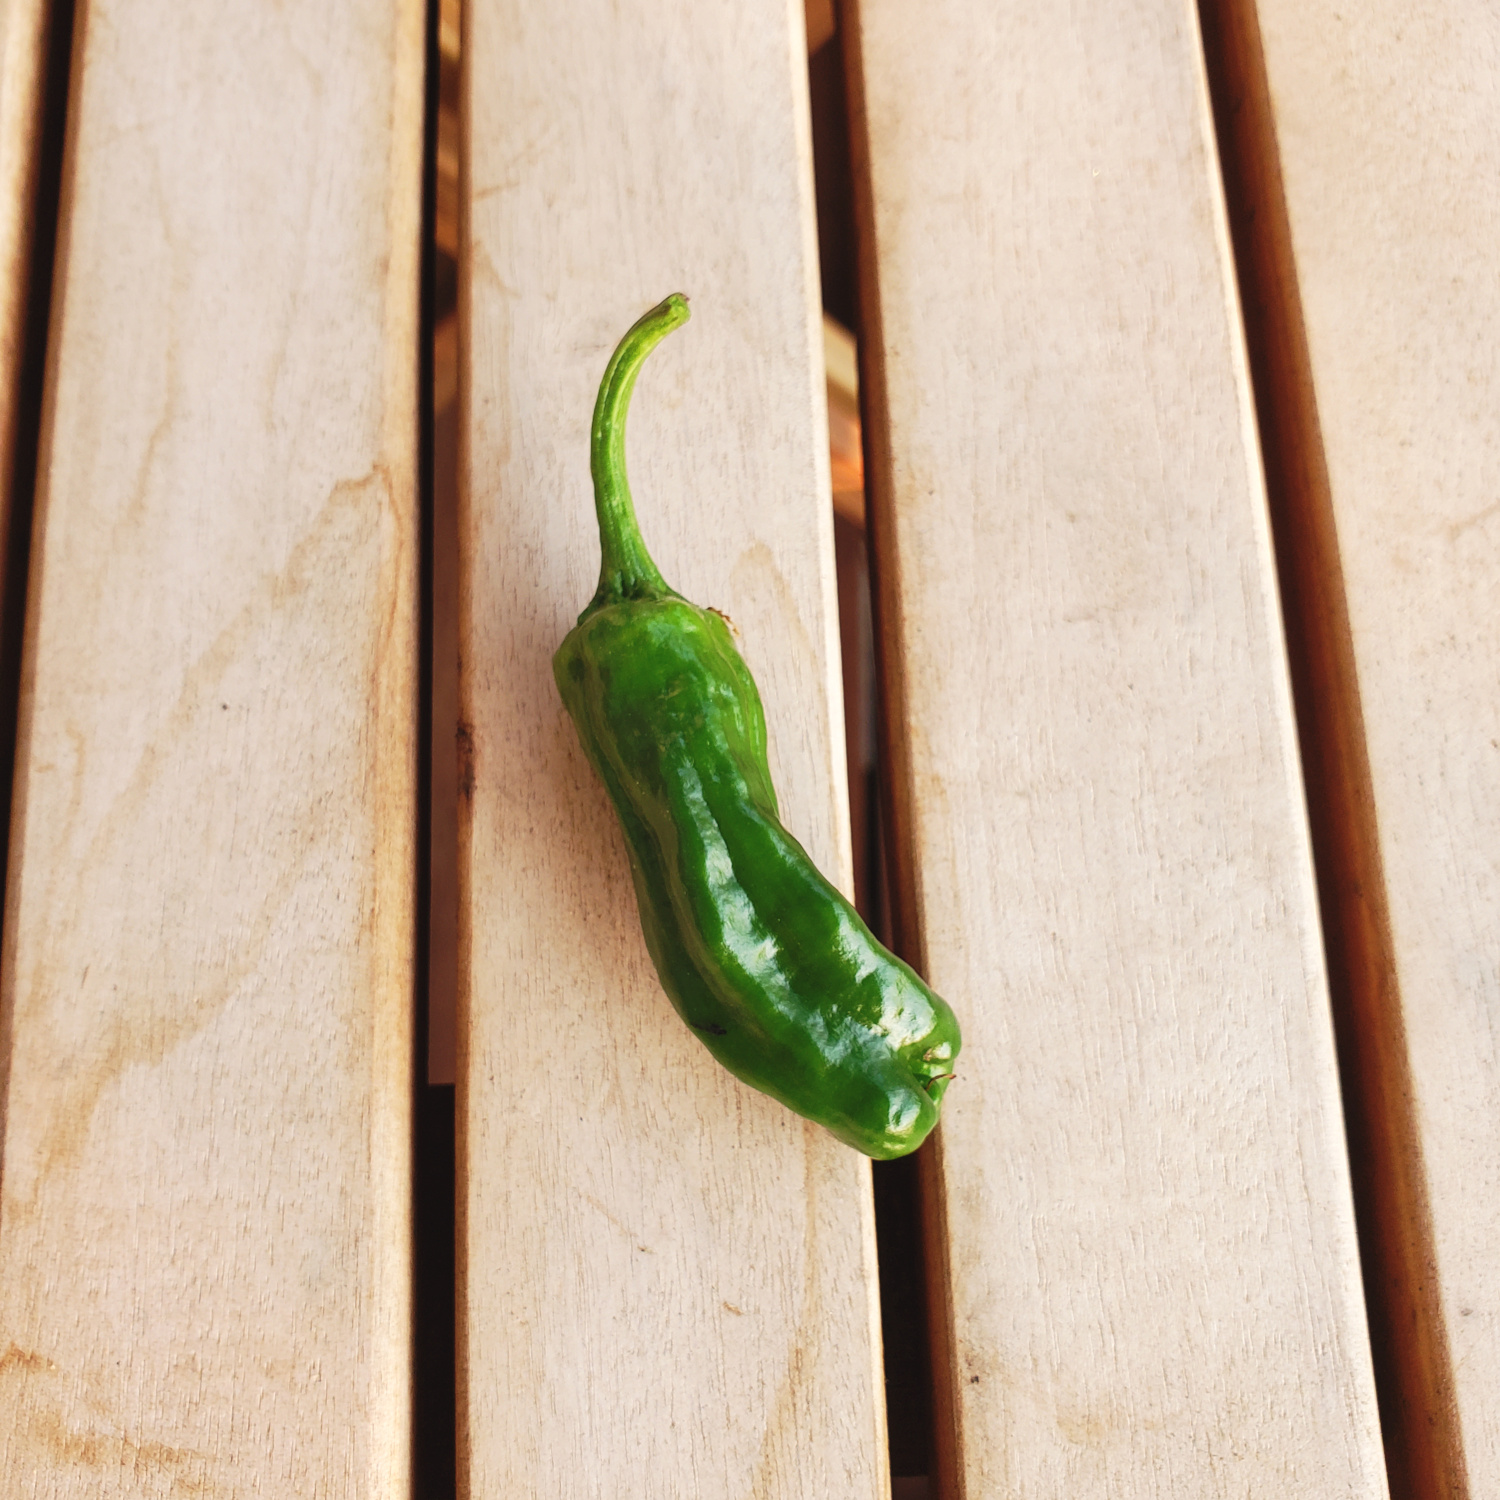 My first shishito pepper is finally ready to be eaten